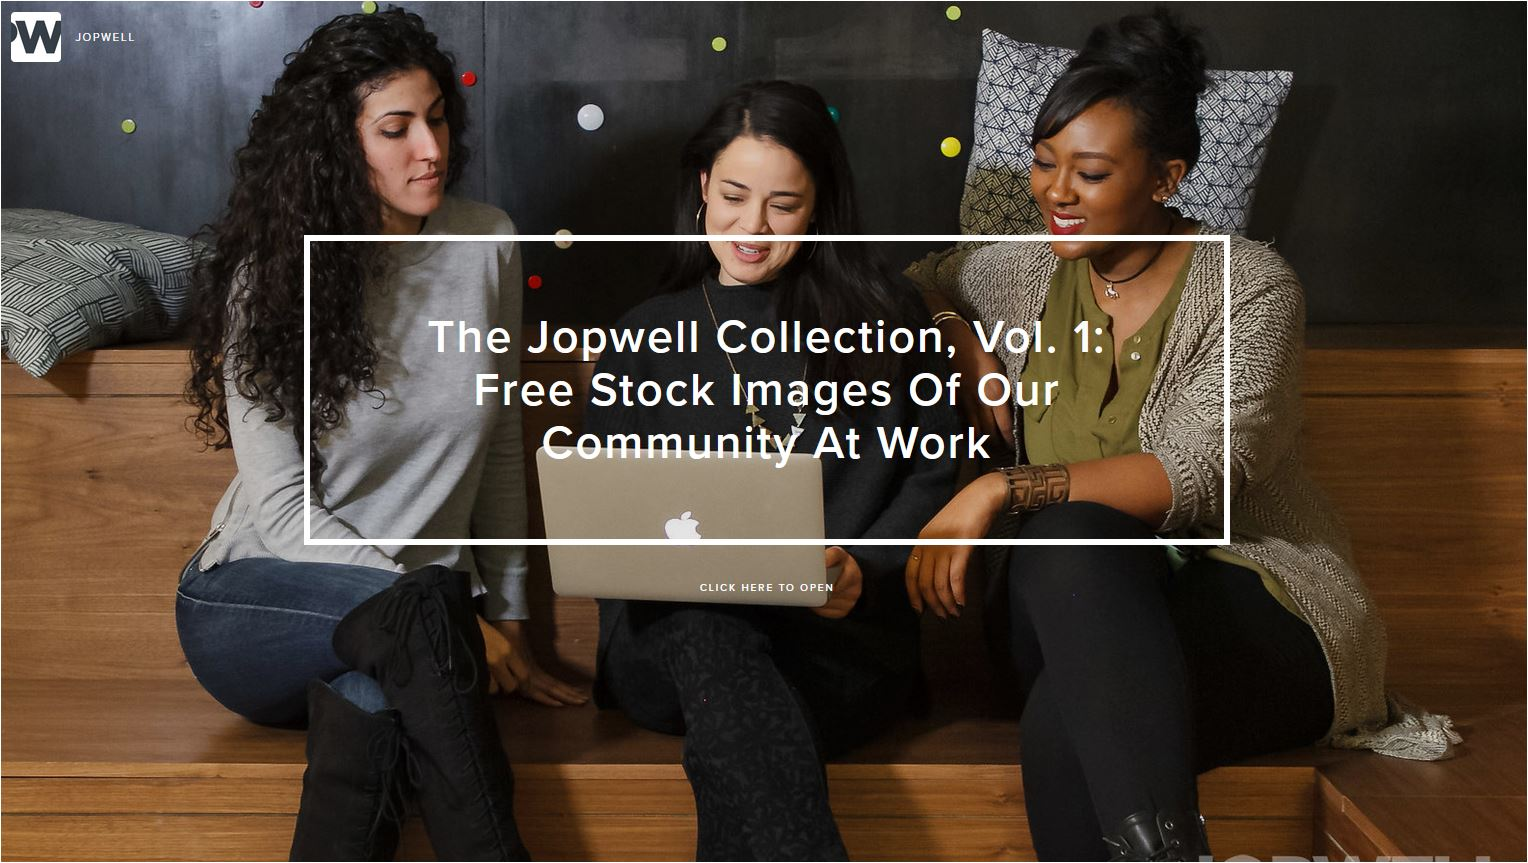 gallery of photos from Jopwell Collection